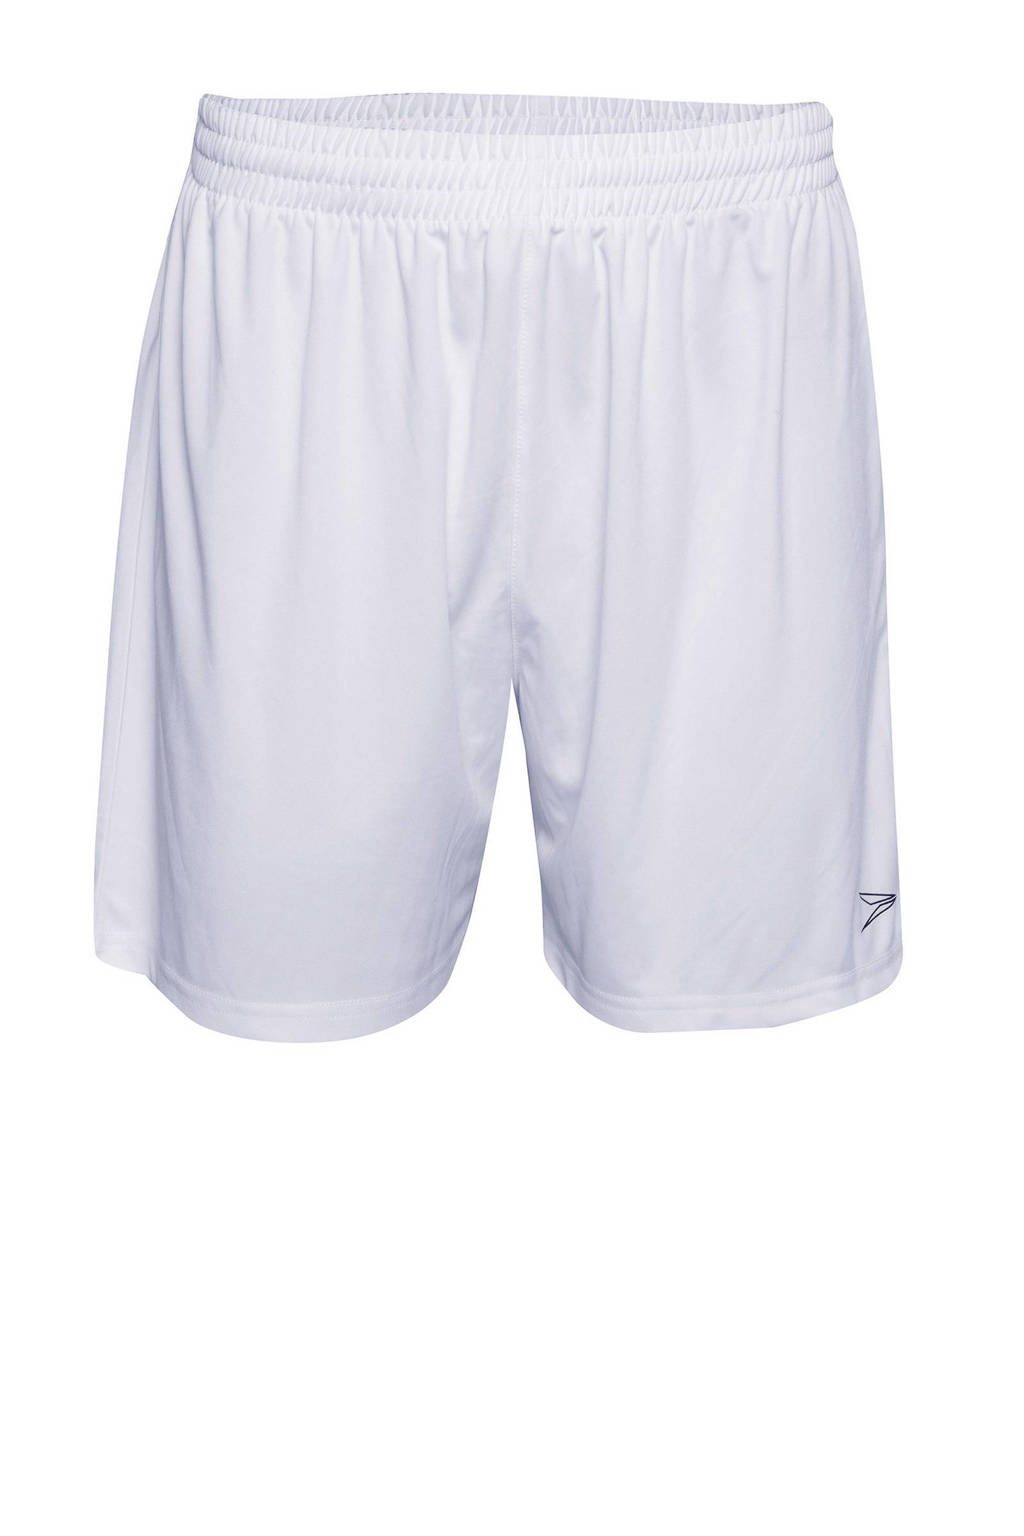 Scapino Dutchy   sportshort, Wit